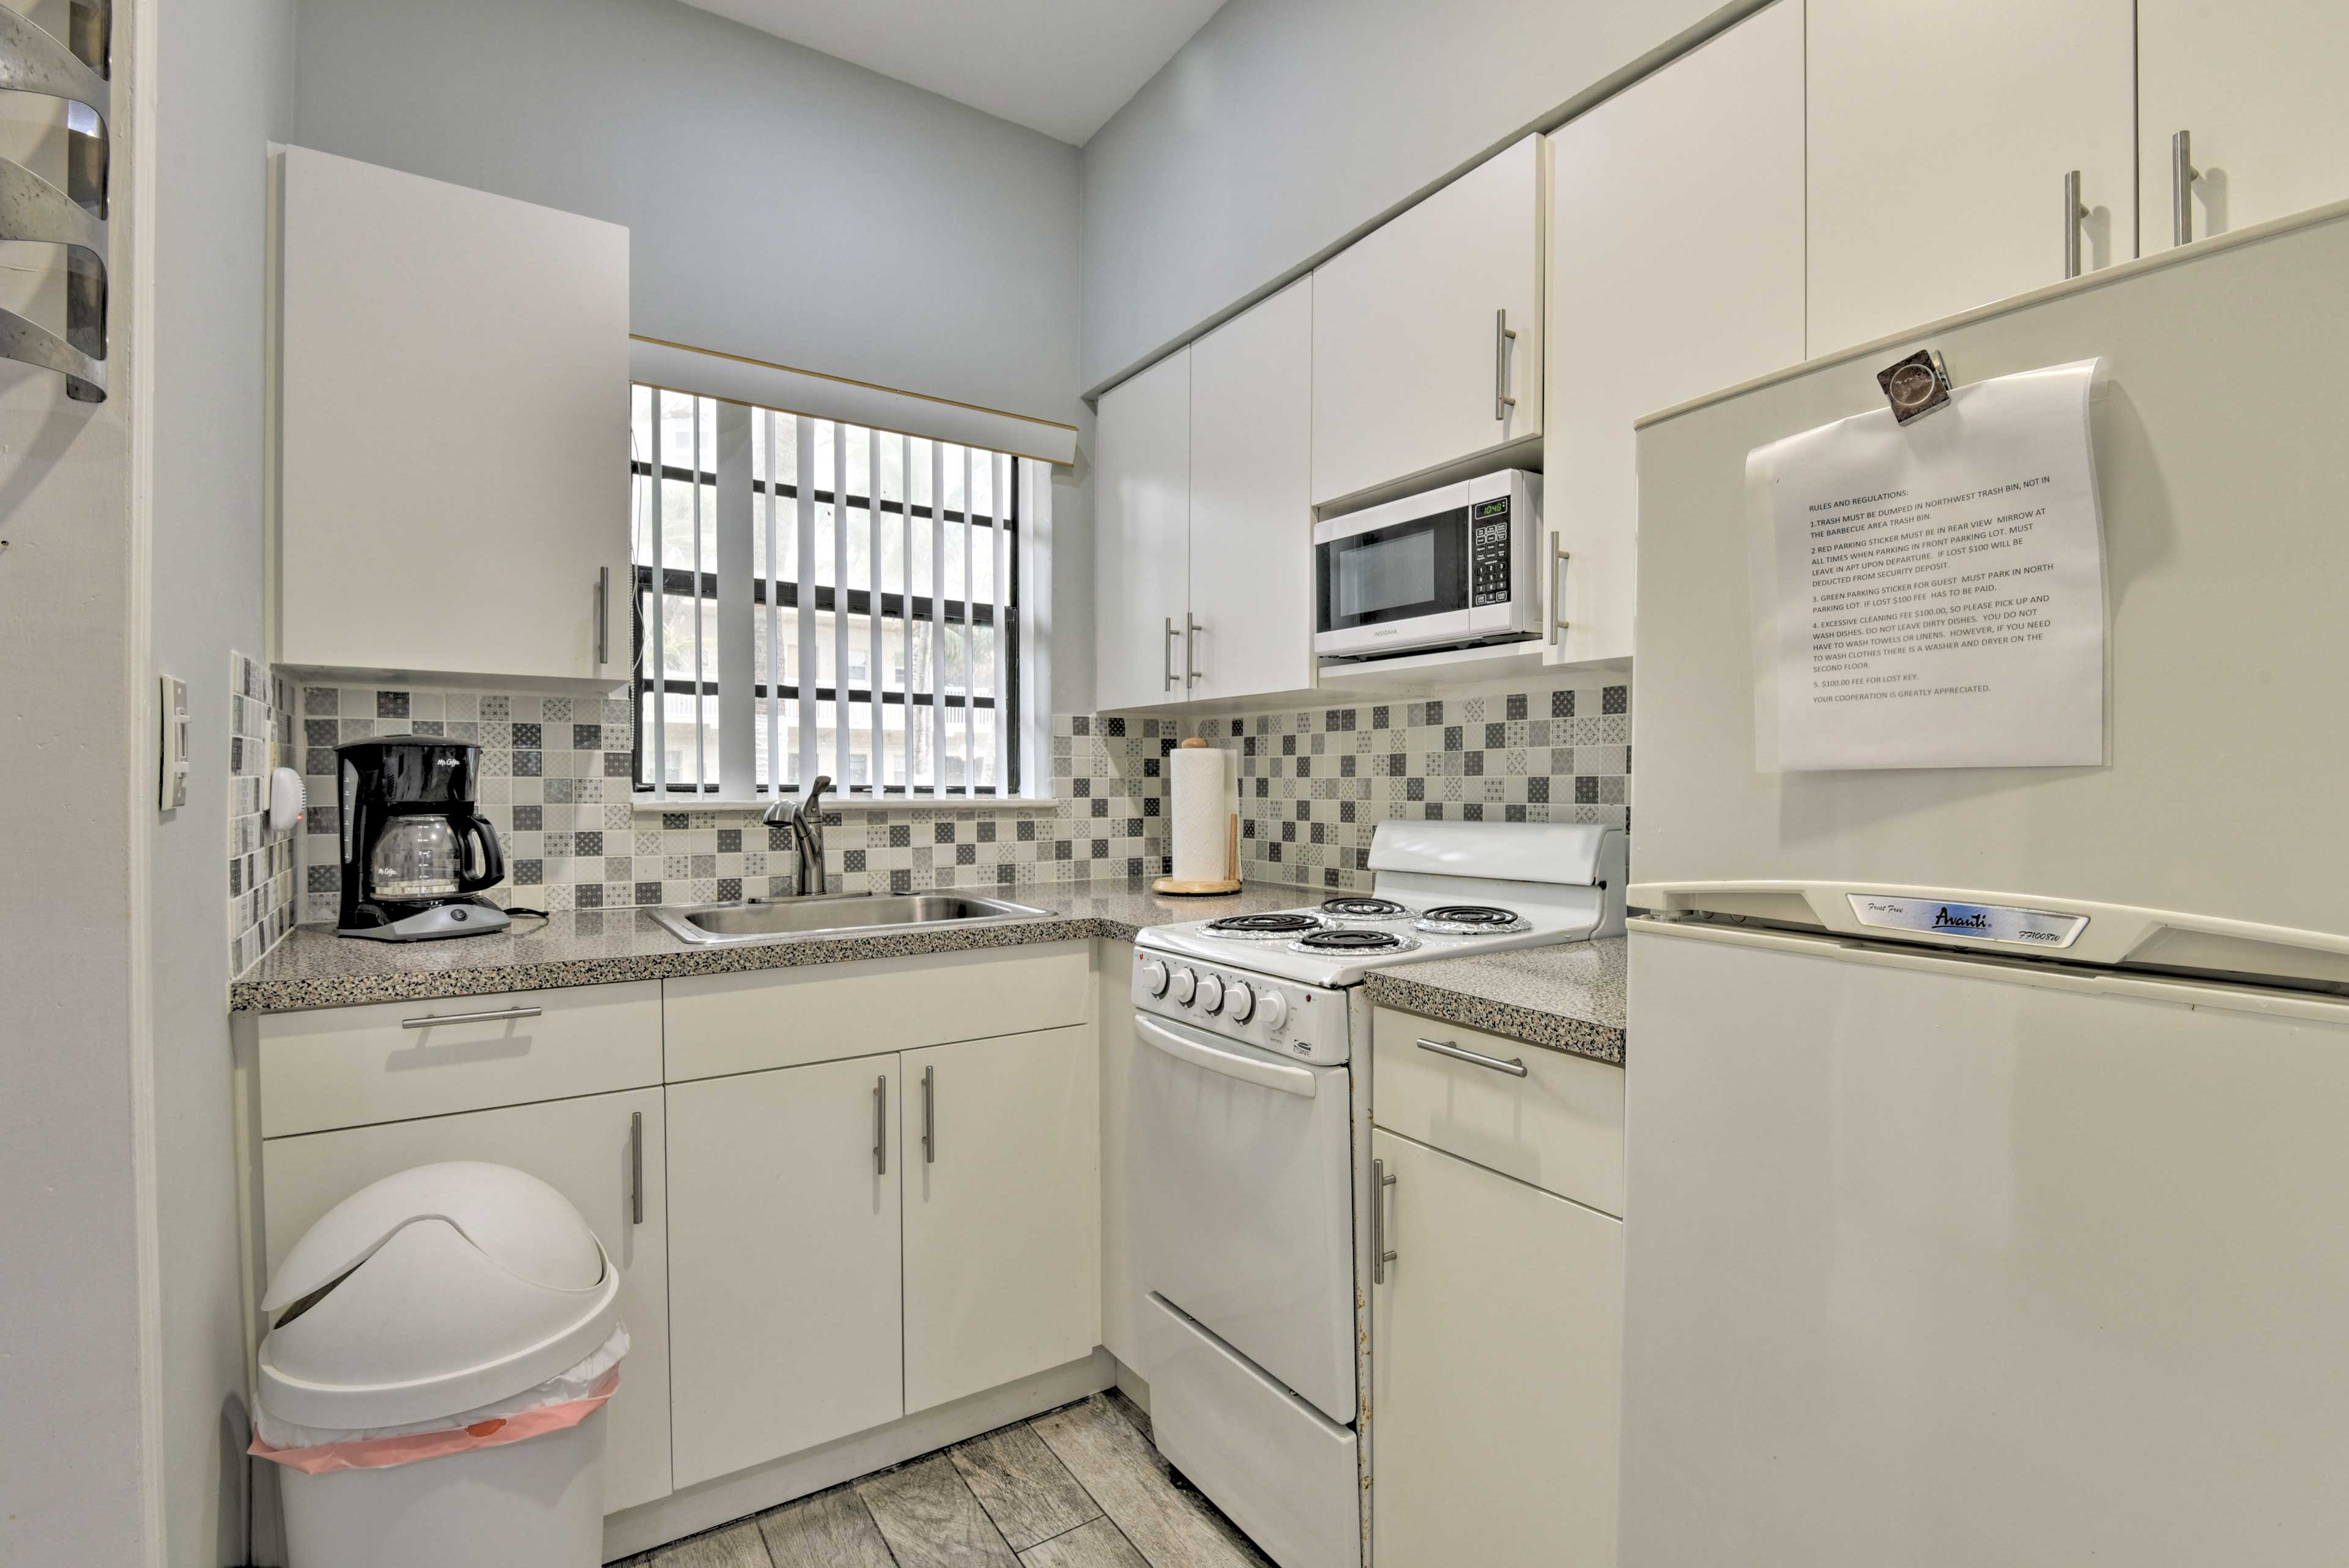 Savor a delicious meal cooked in the well-equipped kitchen!